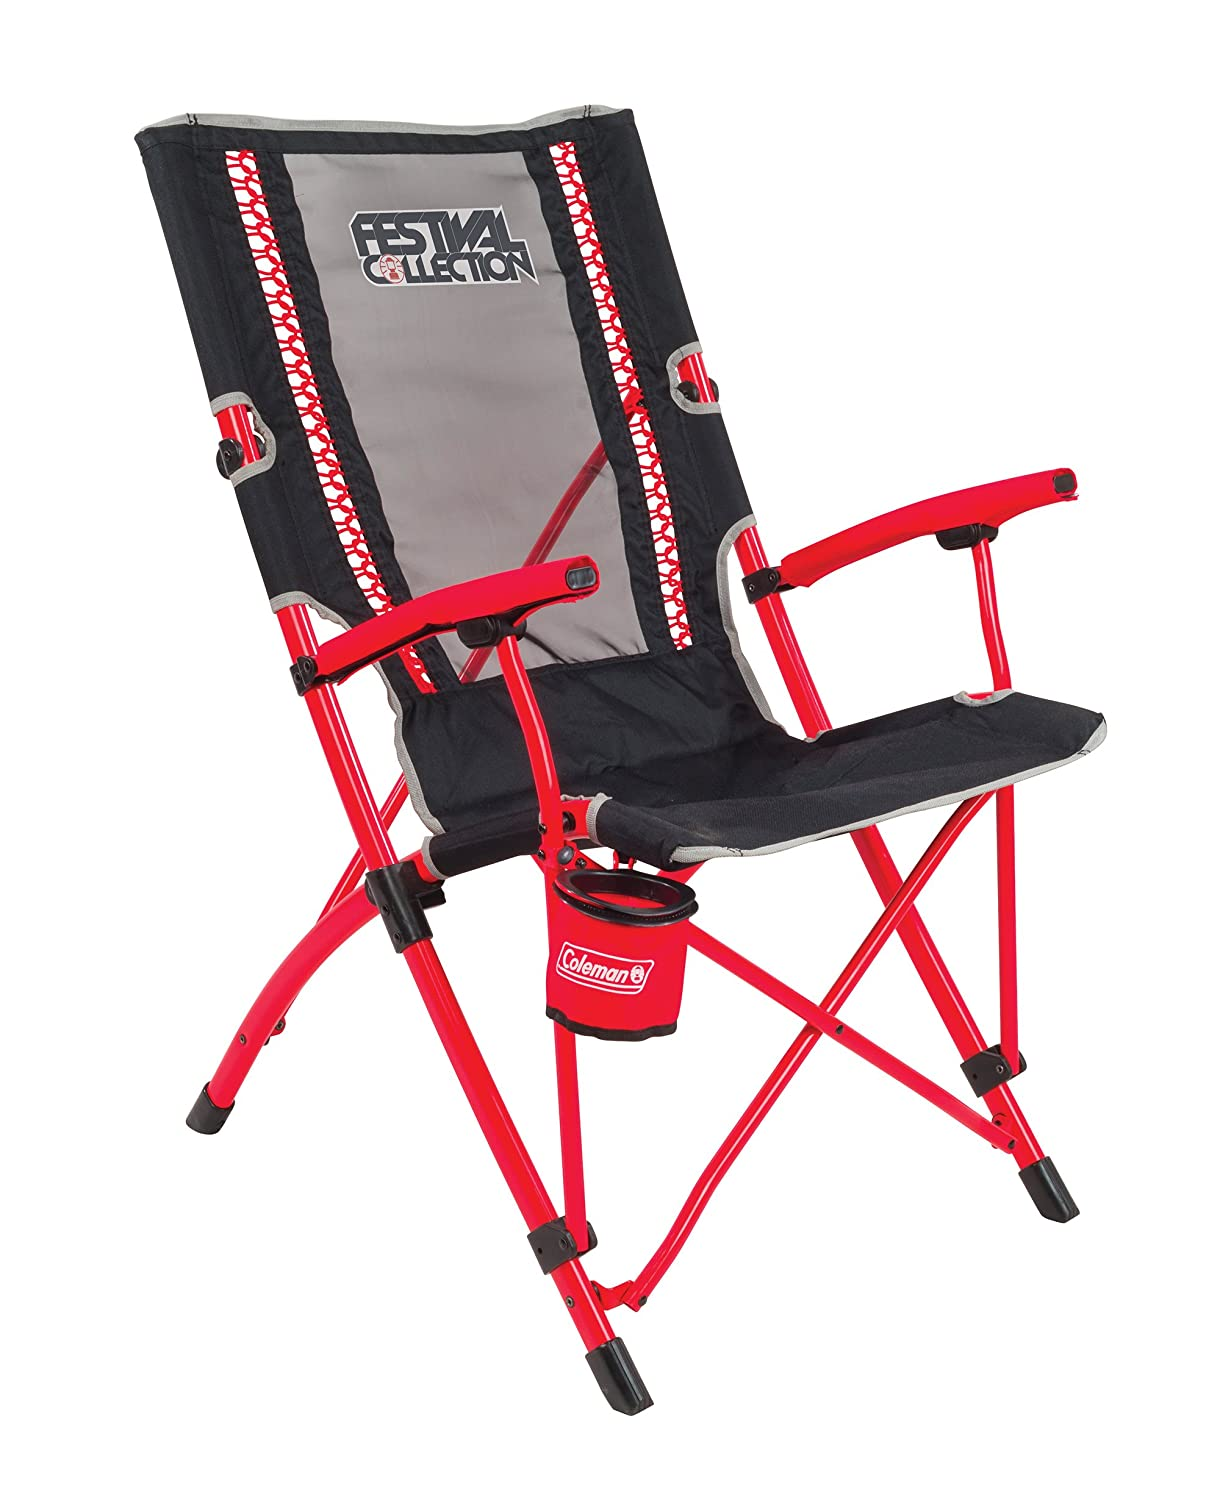 Coleman Camping Chair Festival Bungee, lightweight folding chair with comfortabe bungee cords, sturdy steel frame, portable camp chair with cup holder, use for festivals, fishing and garden 2000032320